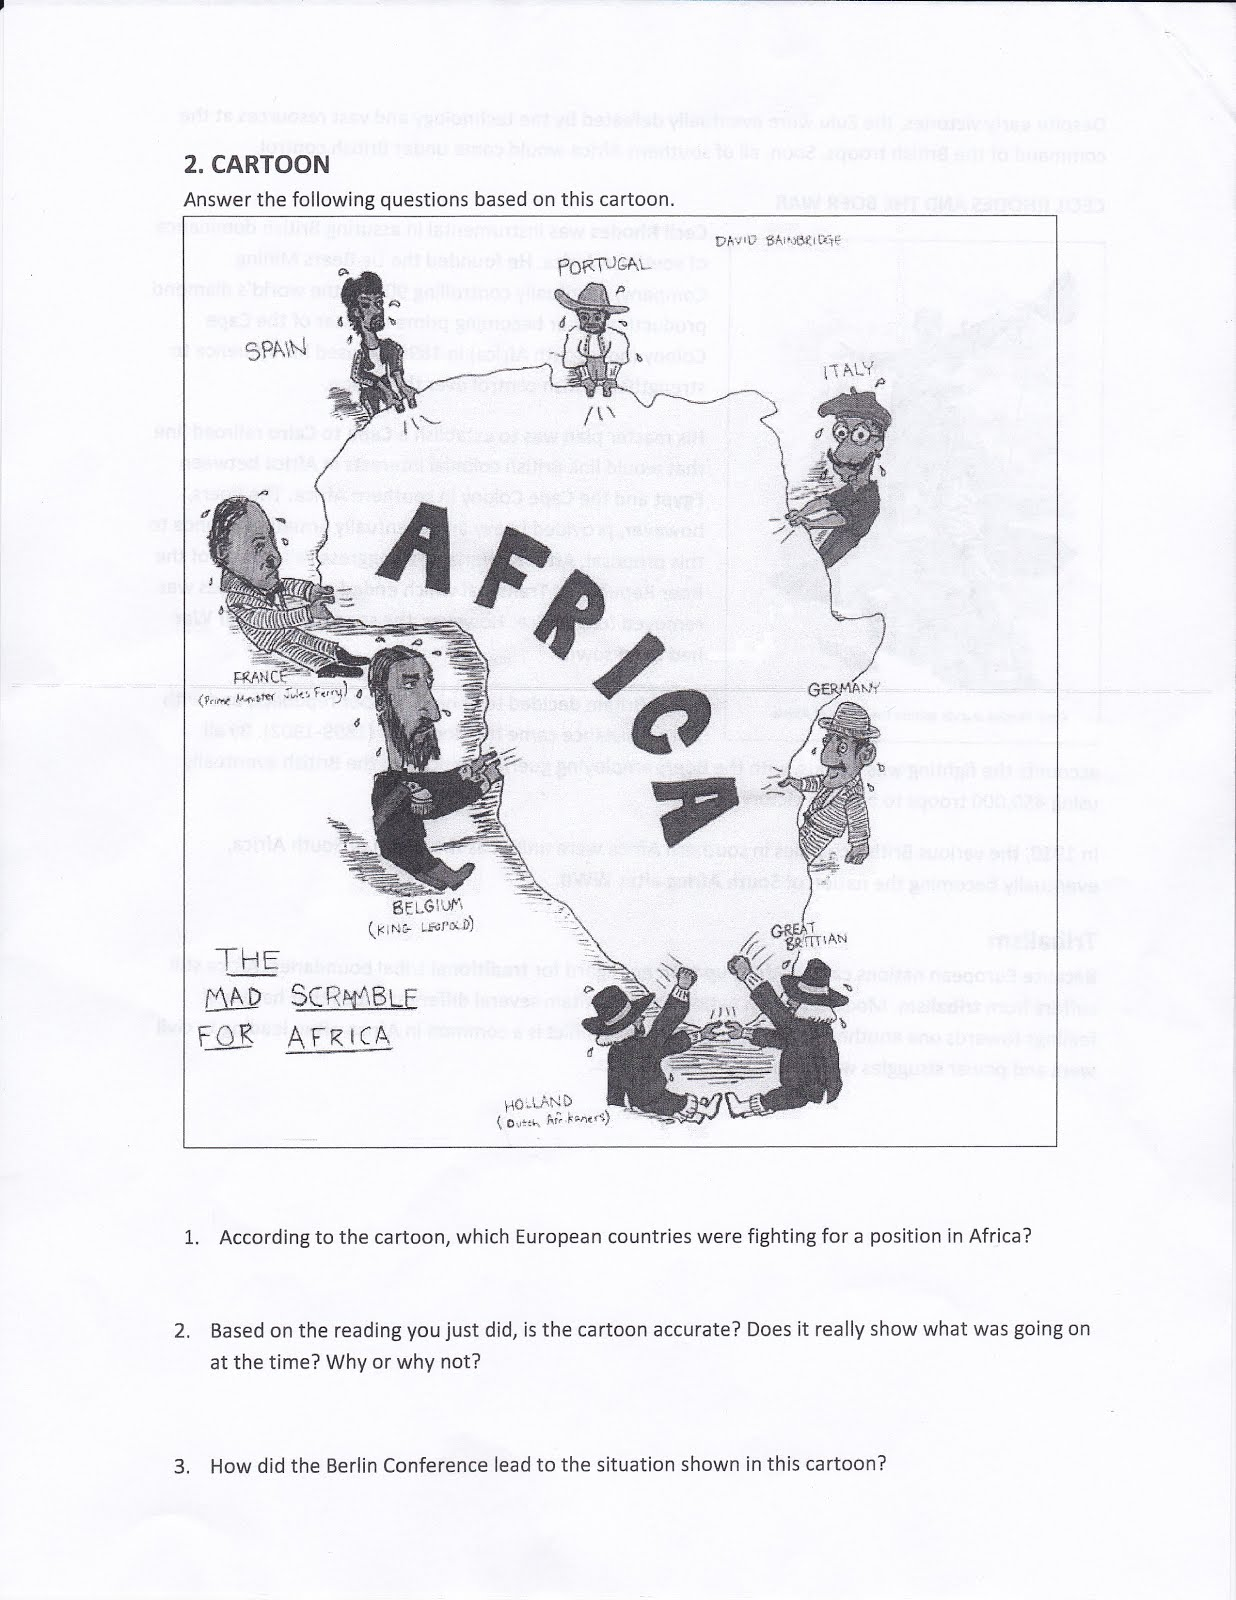 mr izor s akins geography scramble for africa questions